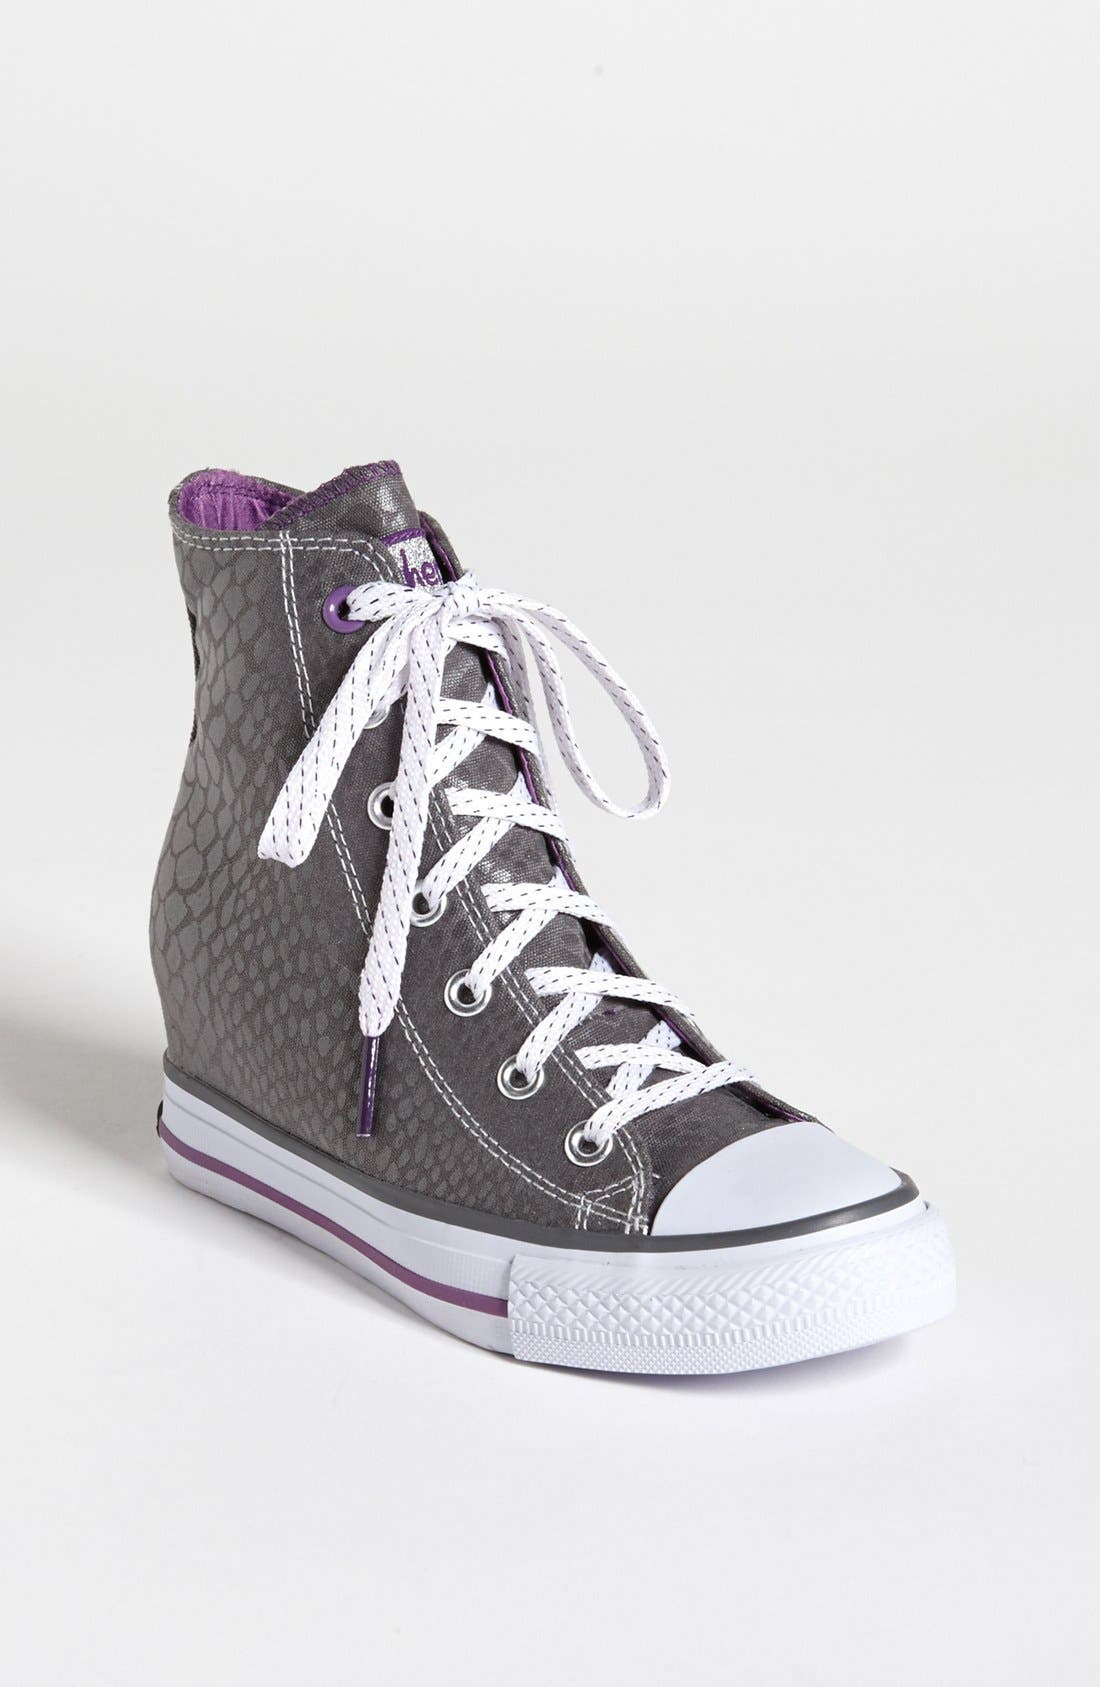 Alternate Image 1 Selected - SKECHERS 'Gimme Wedge' Sneaker (Toddler, Little Kid & Big Kid)